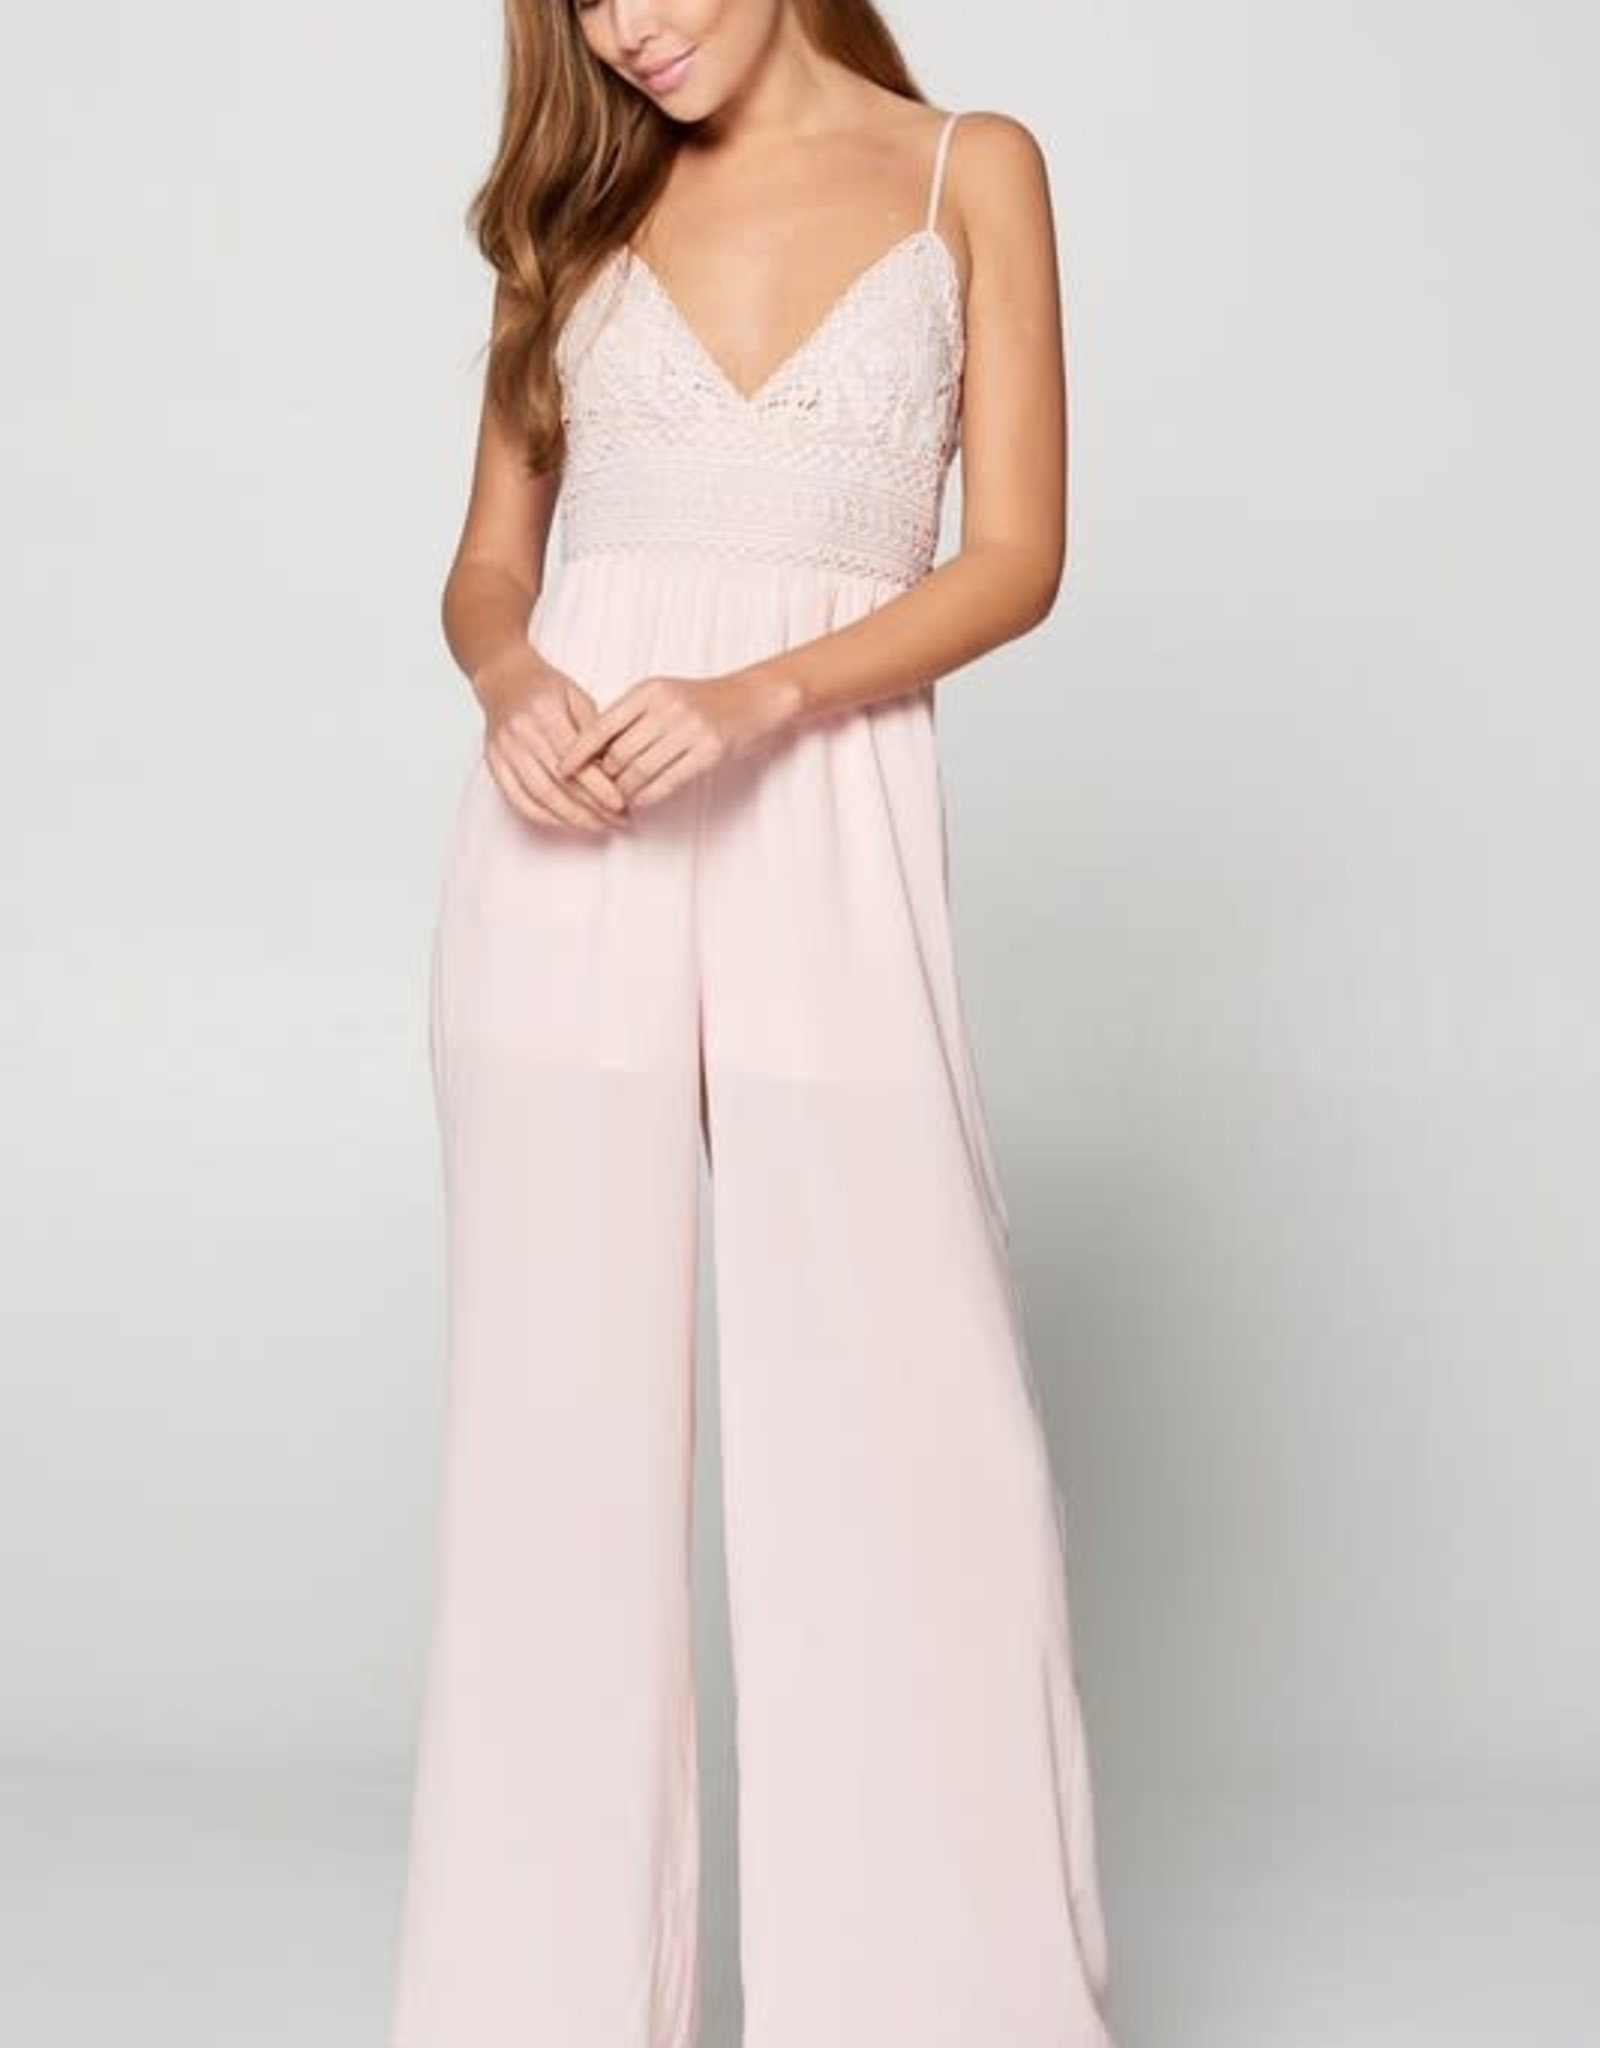 TLC CAMI JUMPSUIT CROCHET DETAIL TIE BACK